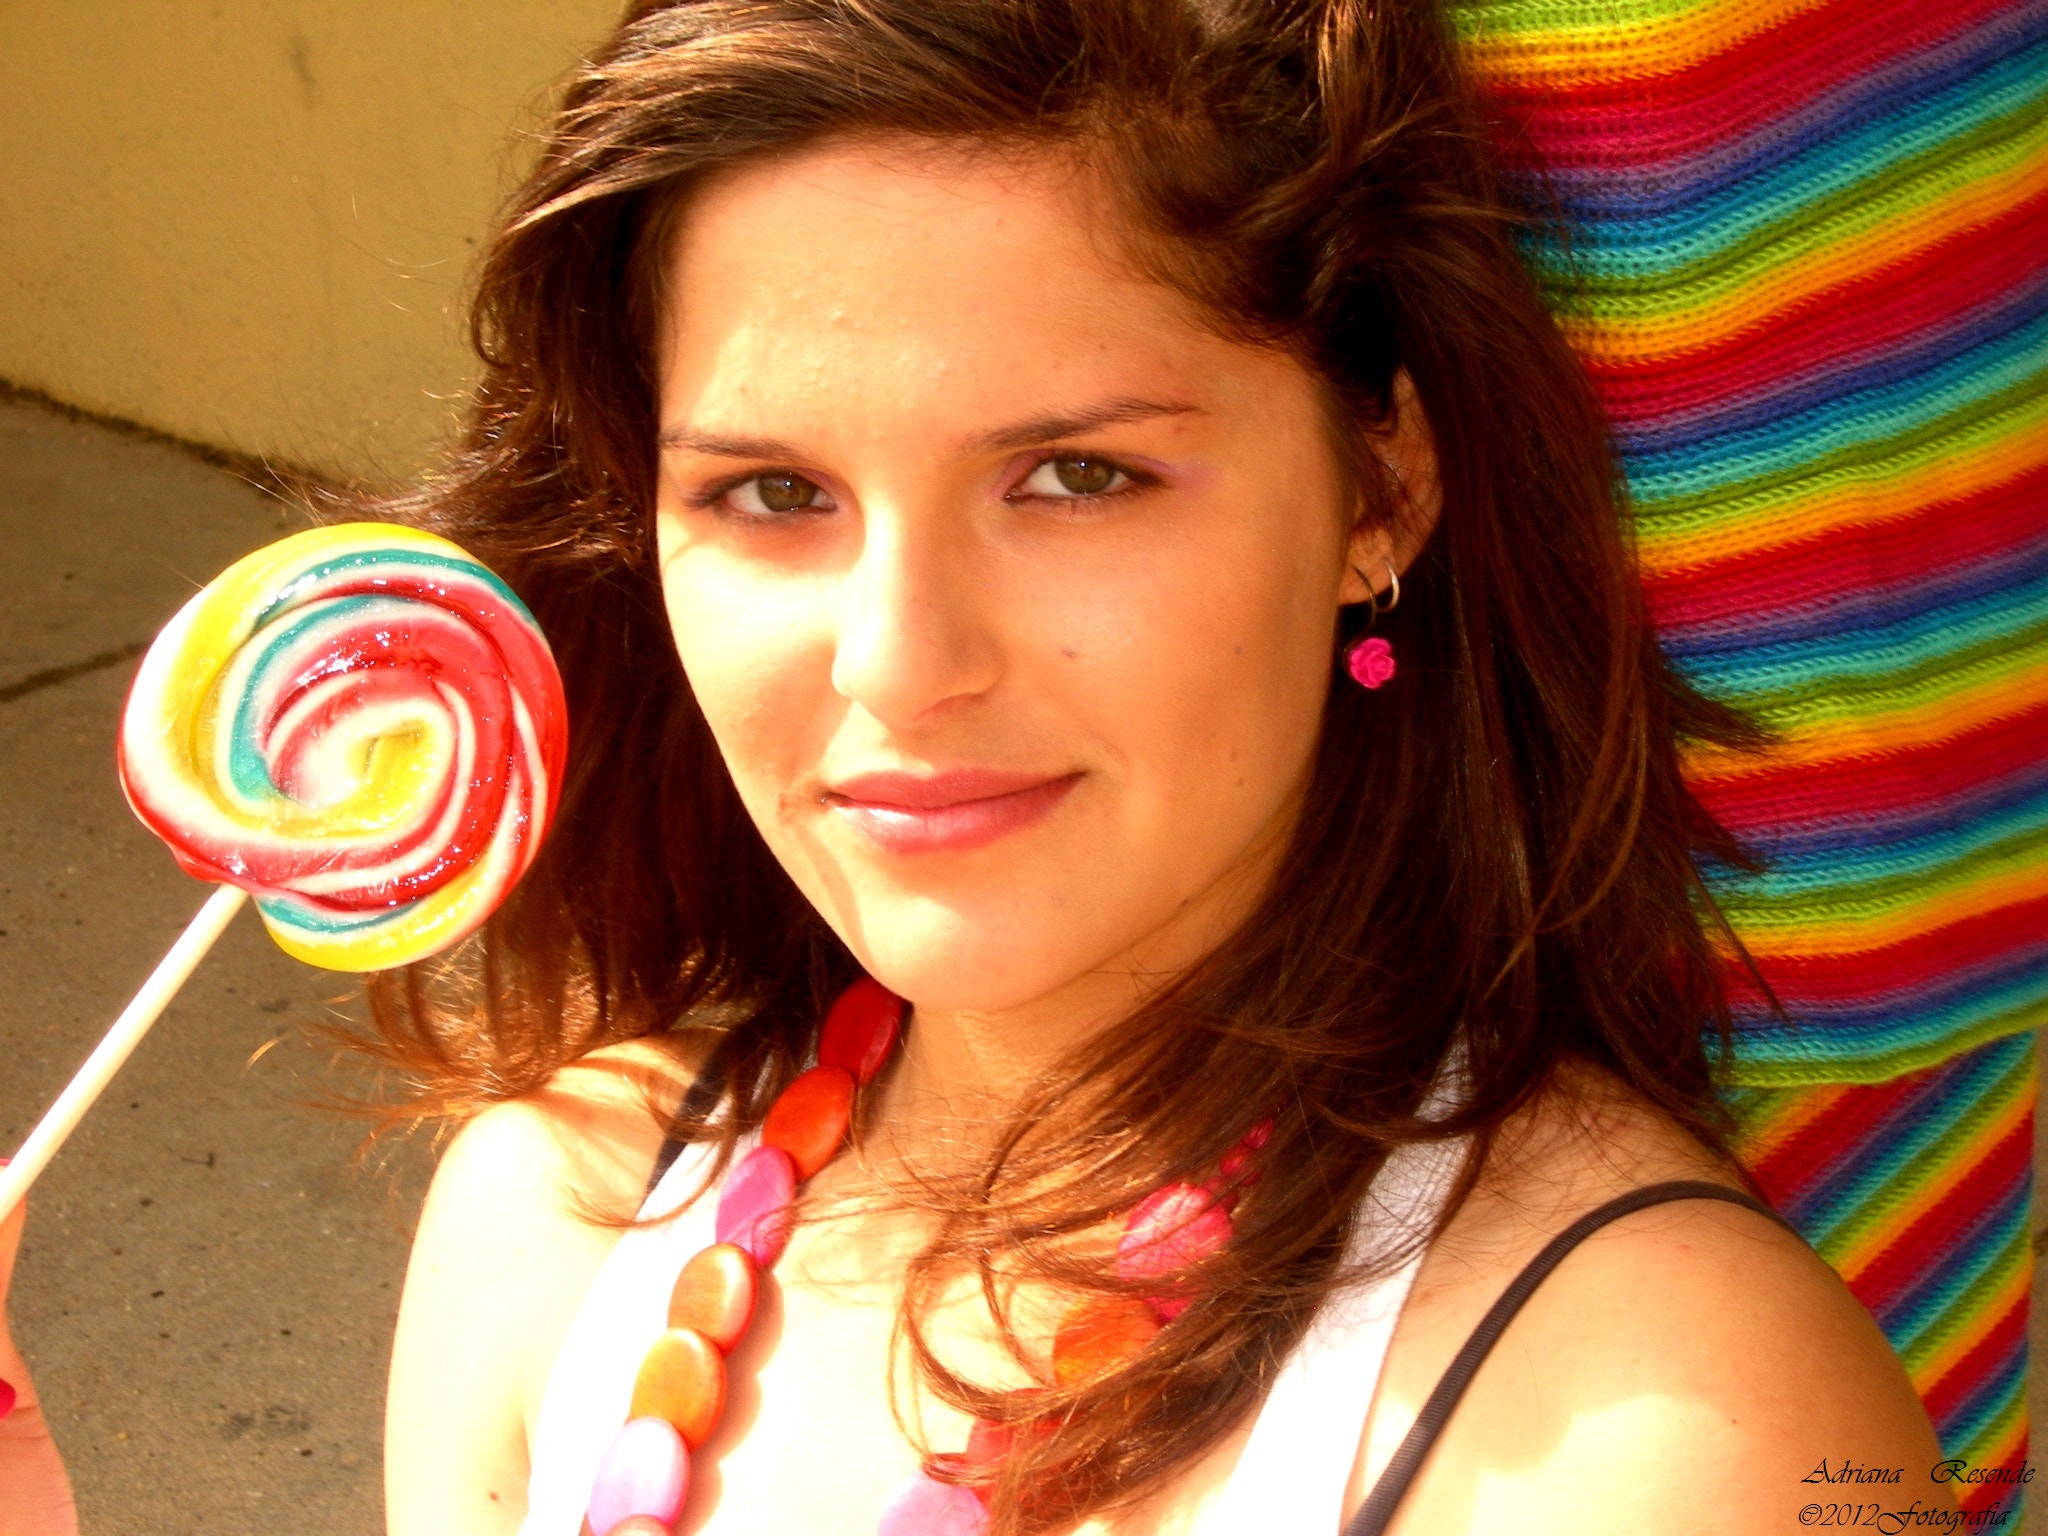 Photograph Nicole Henriques - lollipop by Adriana Resende on 500px